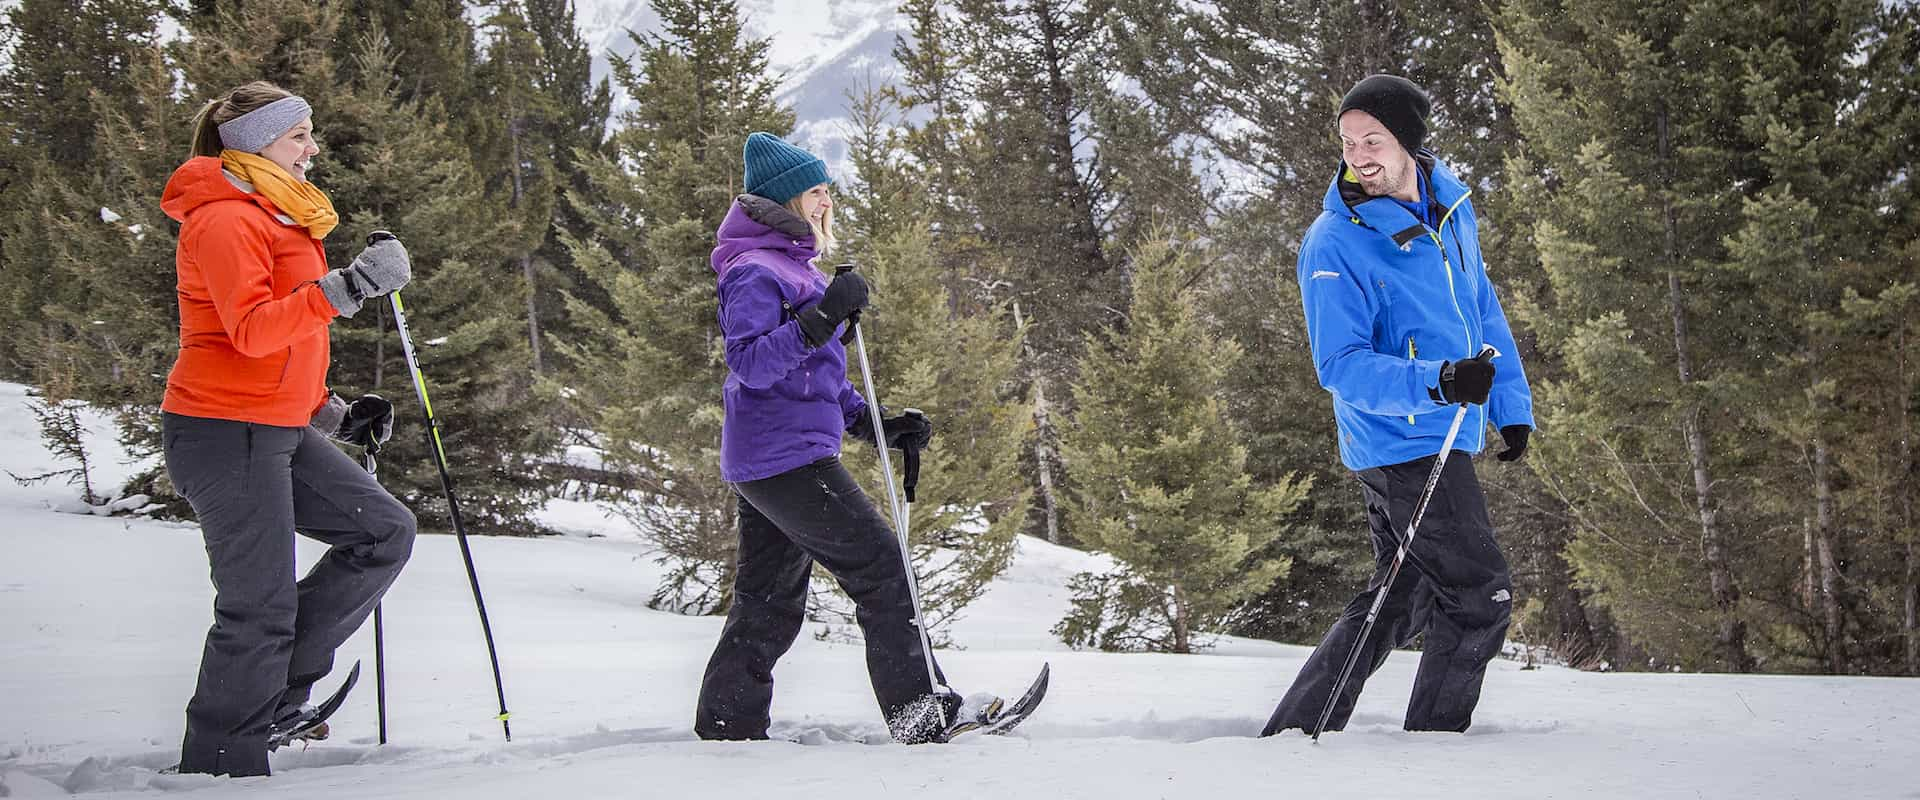 Take an easy Banff snowshoeing tour with Discover Banff Tours in the Canadian Rockies